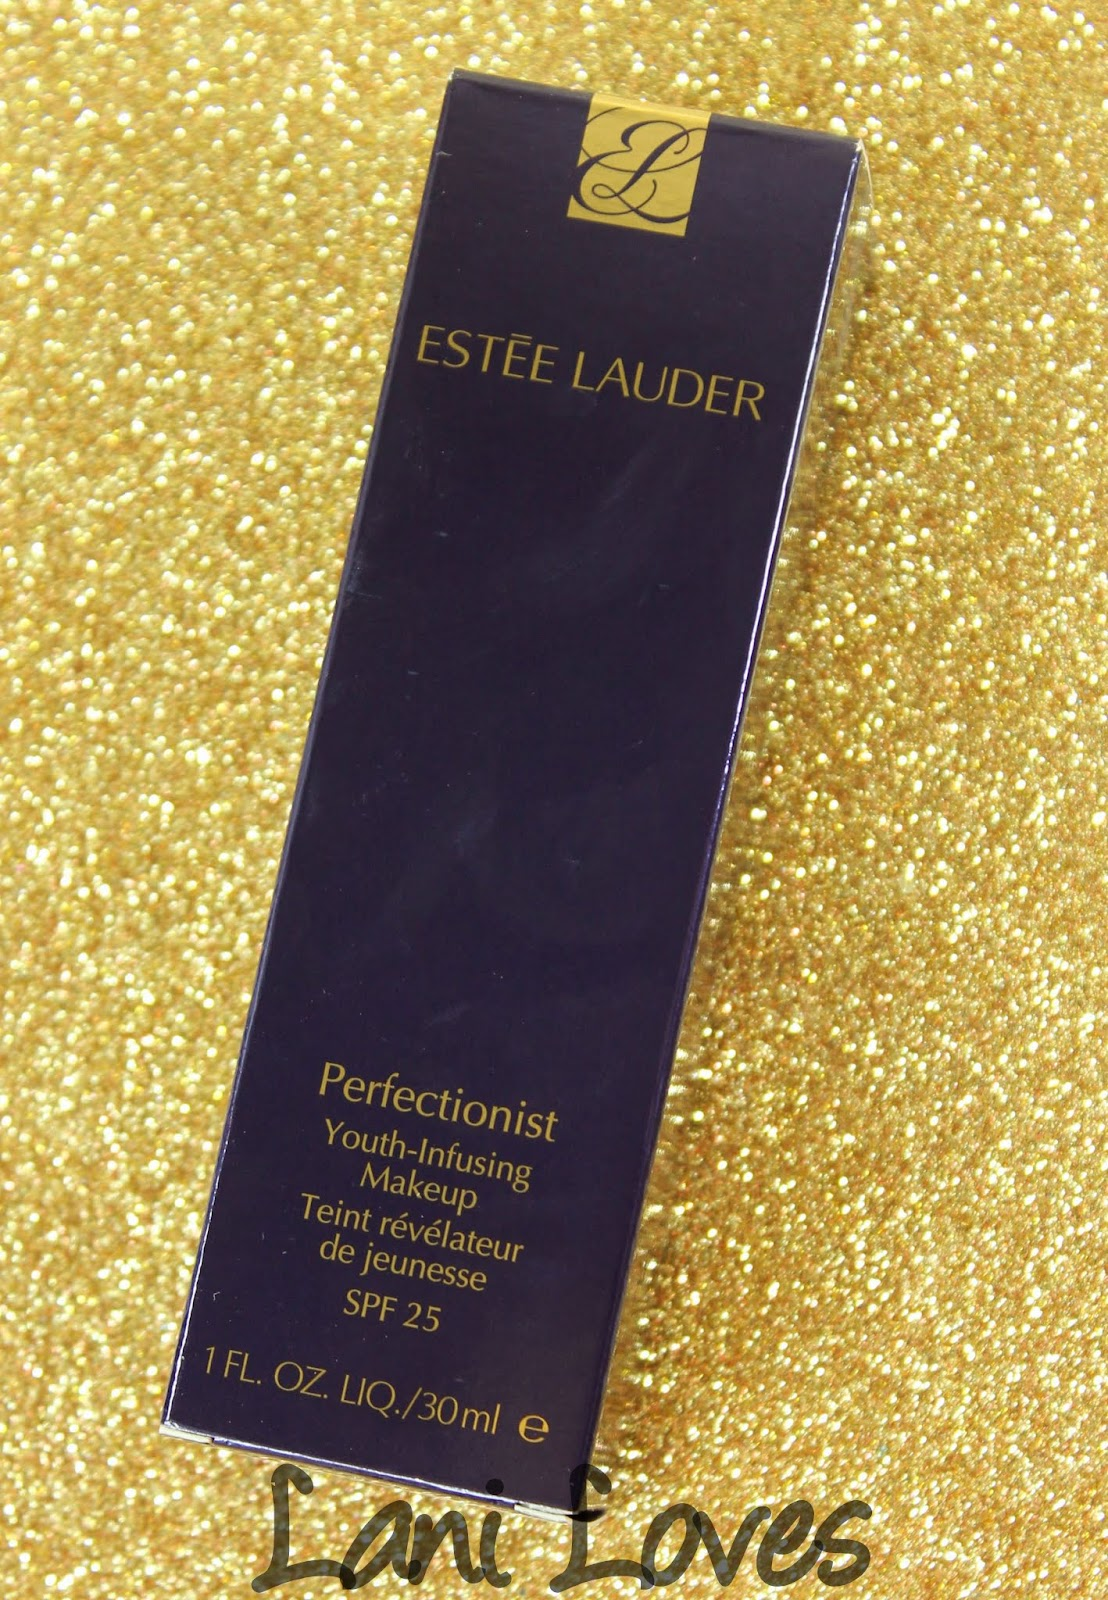 Estee Lauder Perfectionist Youth-Infusing Makeup - 1C1 Cool Bone Swatches & Review